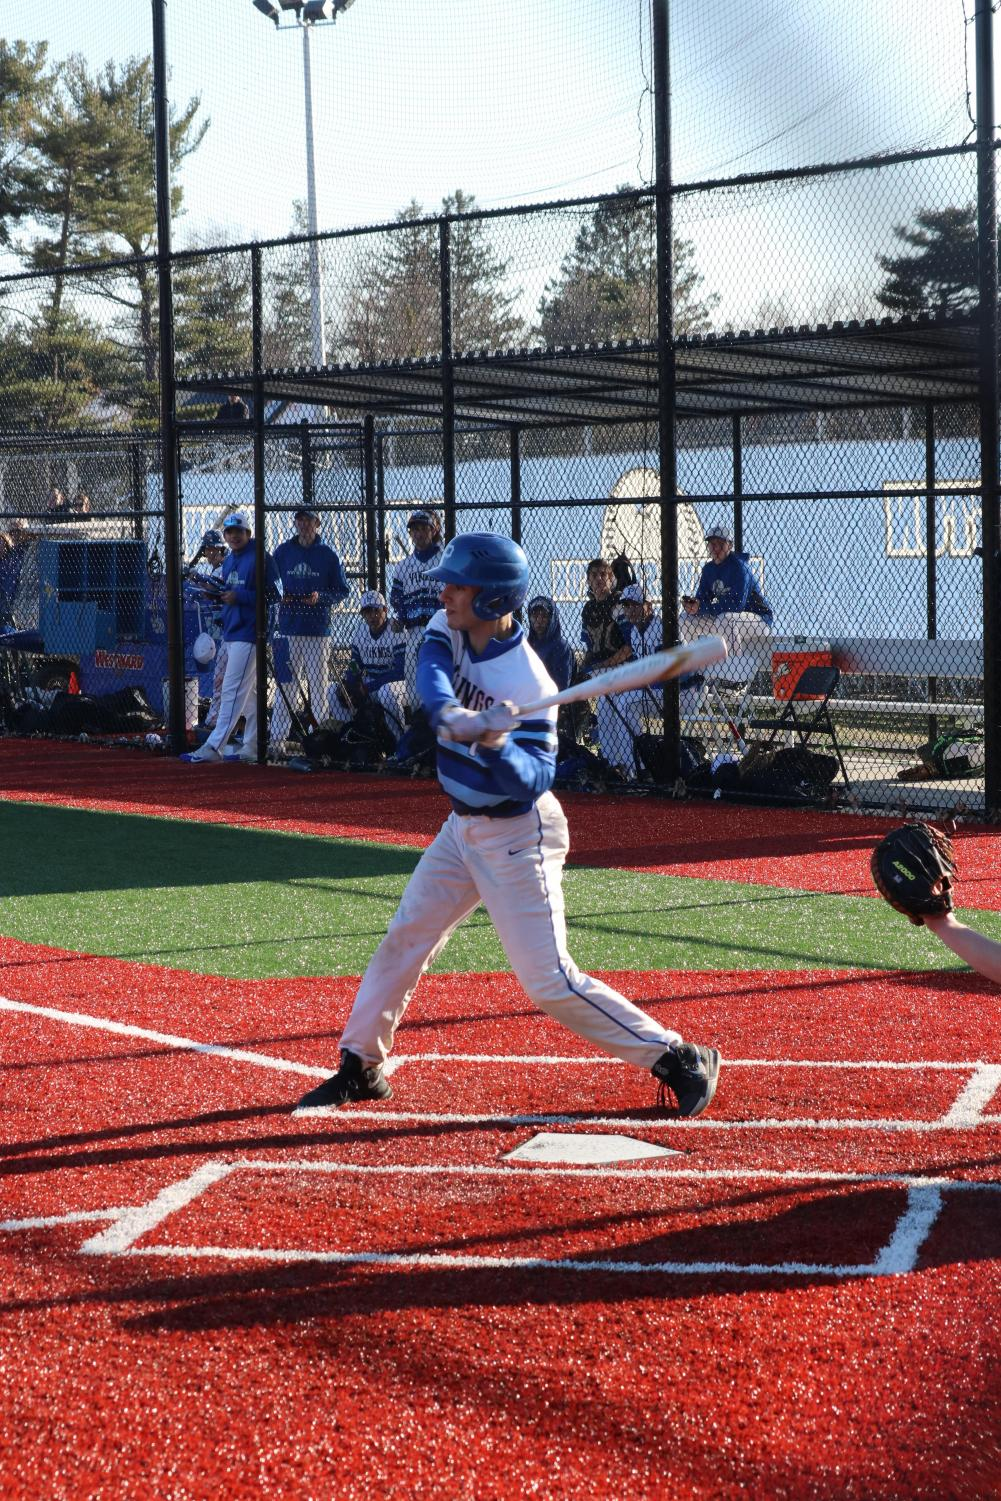 Senior Jack Stopler hacks at a pitch during a home game against Hicksville on March 29.  The team went on to win the game 10-5.